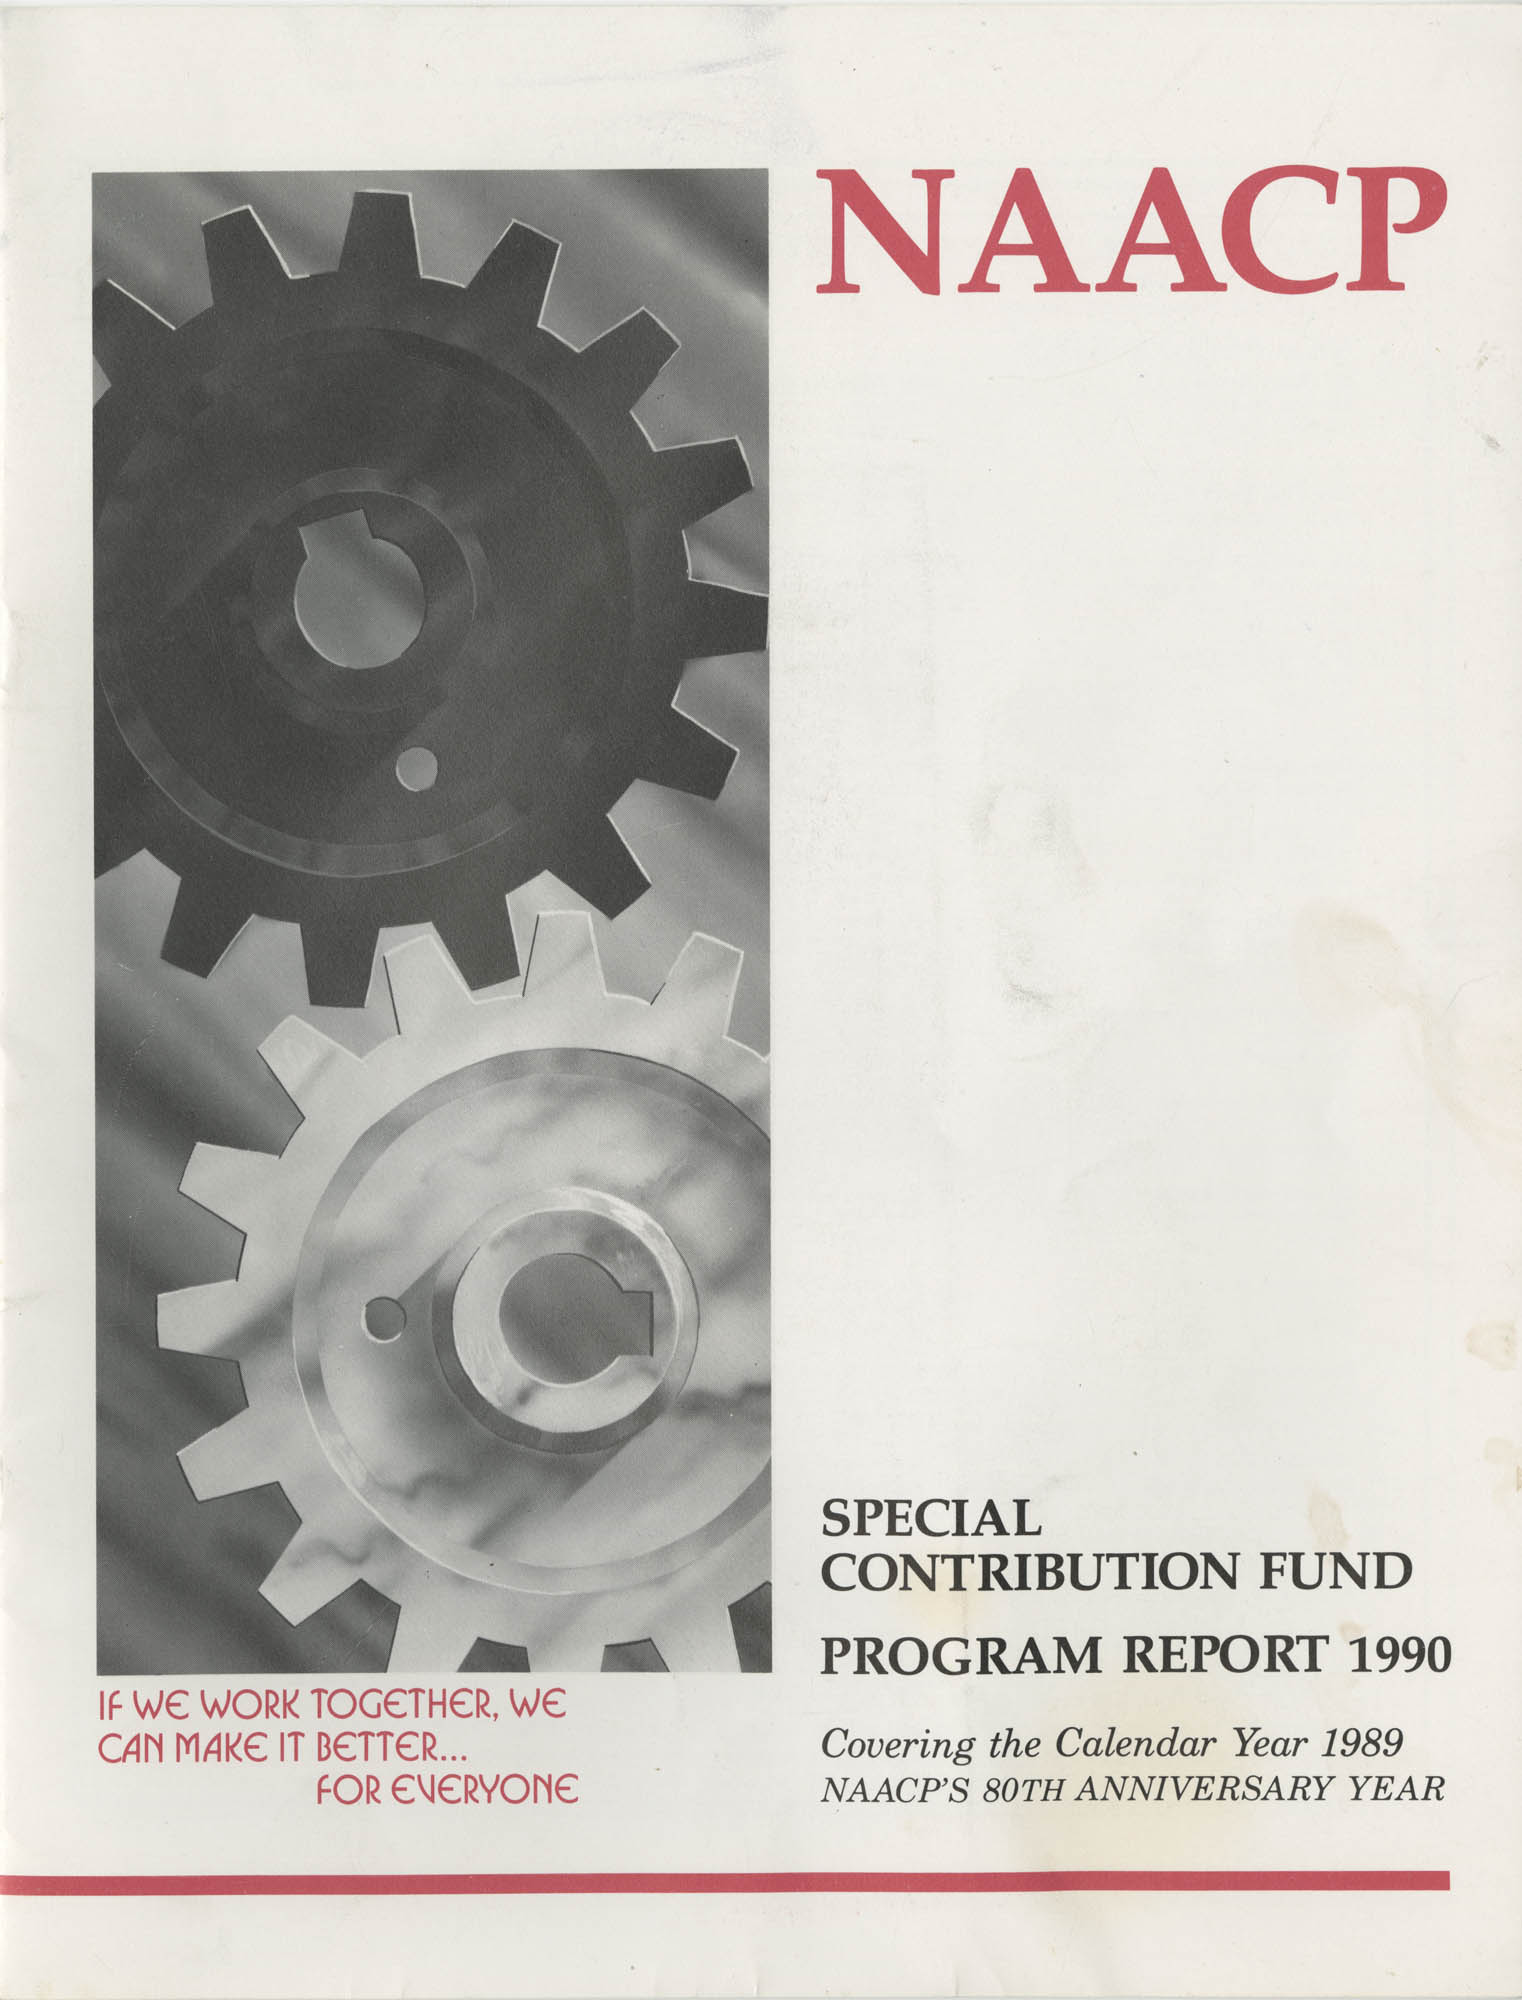 Program Report 1990, Special Contribution Fund, NAACP, Cover Page